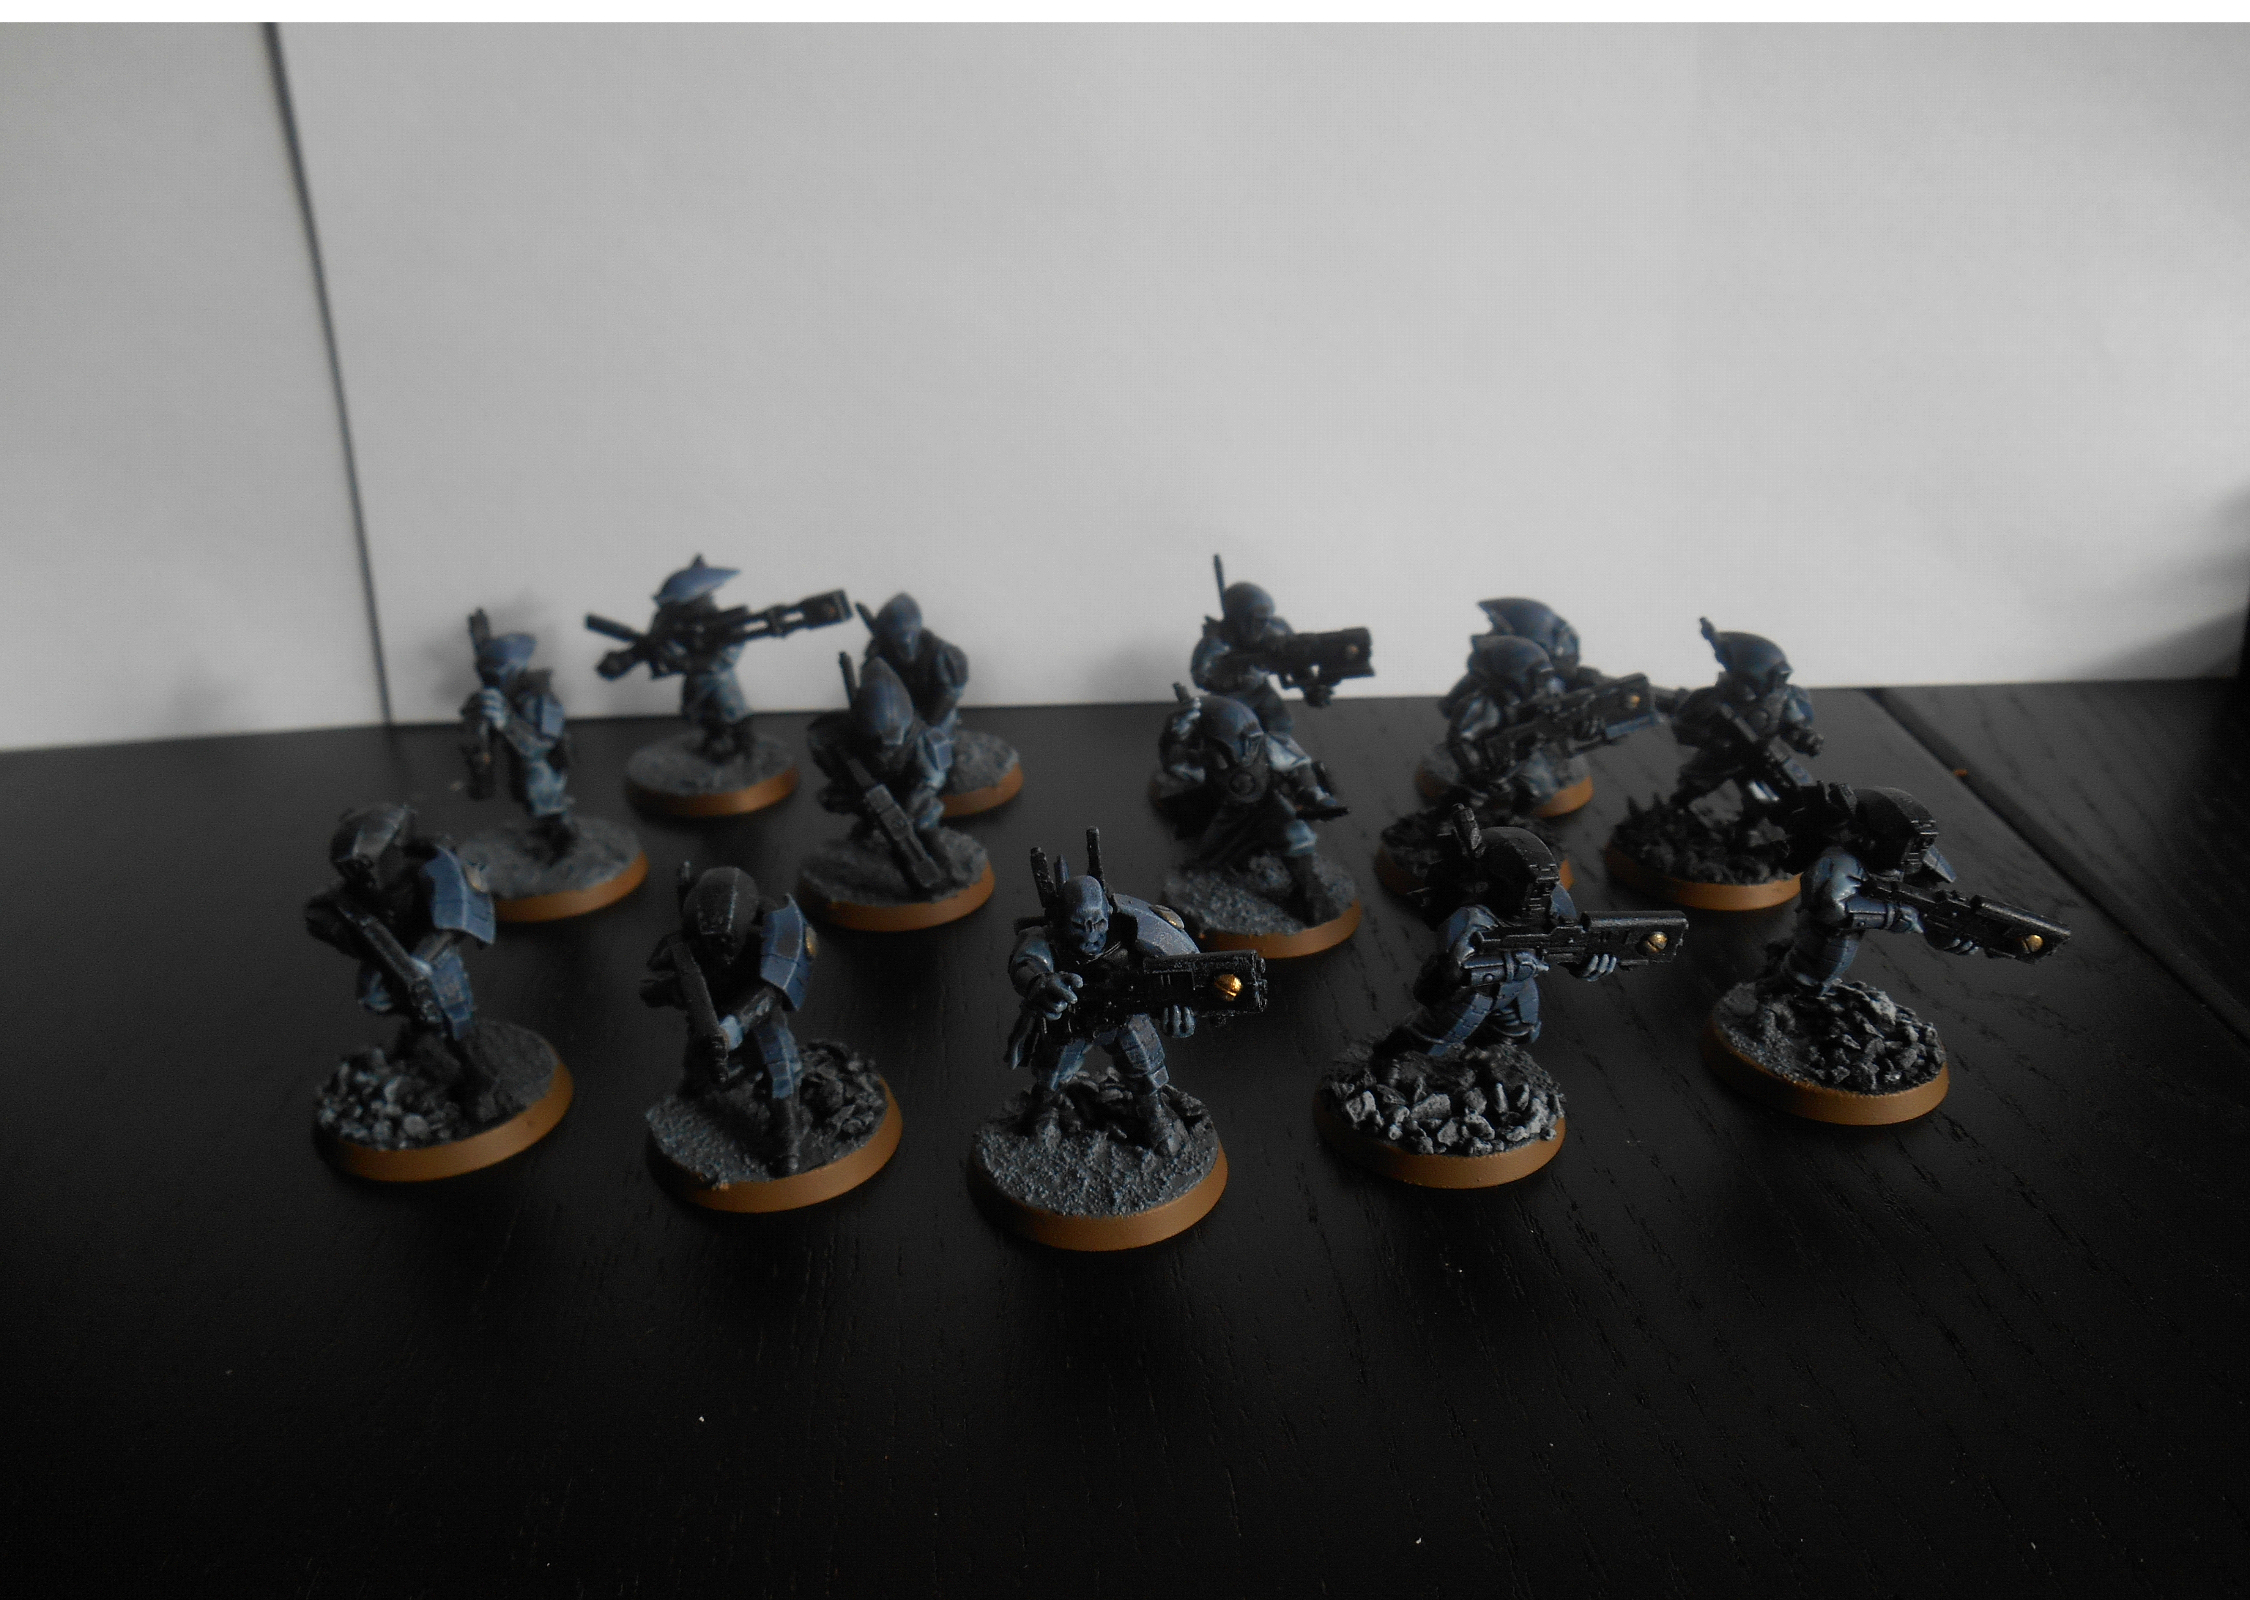 Rapid Intervention Cadre Team 2, a combination of Fire Warrior Breachers and Pathfinders